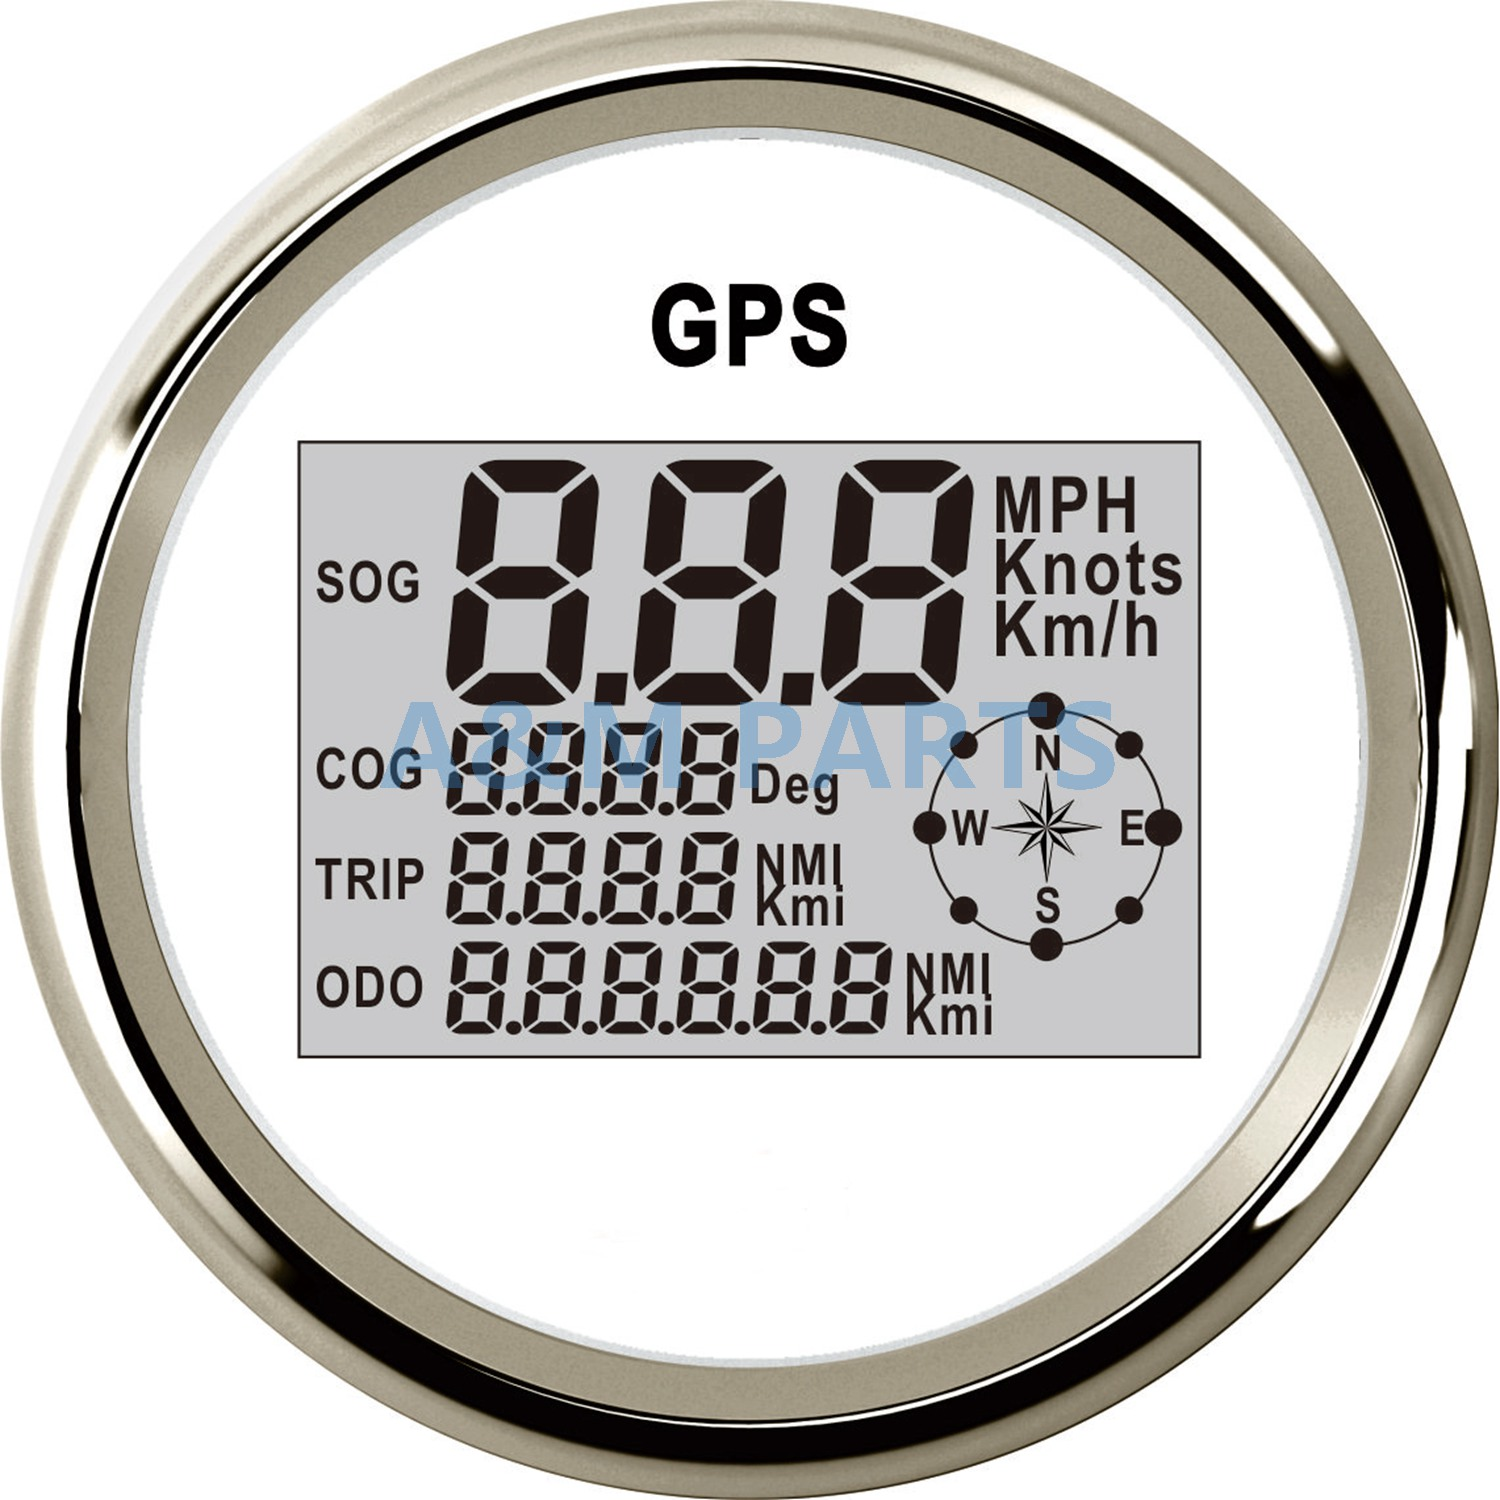 Boat Marine Truck GPS Speedometer Gauge Digital LCD Odometer W/ GPS Speed Antenna Sensor 12V 24V 85mm universal 85mm car gps speedometer digital lcd speed gauge knots compass with gps antenna for boats motorcycle